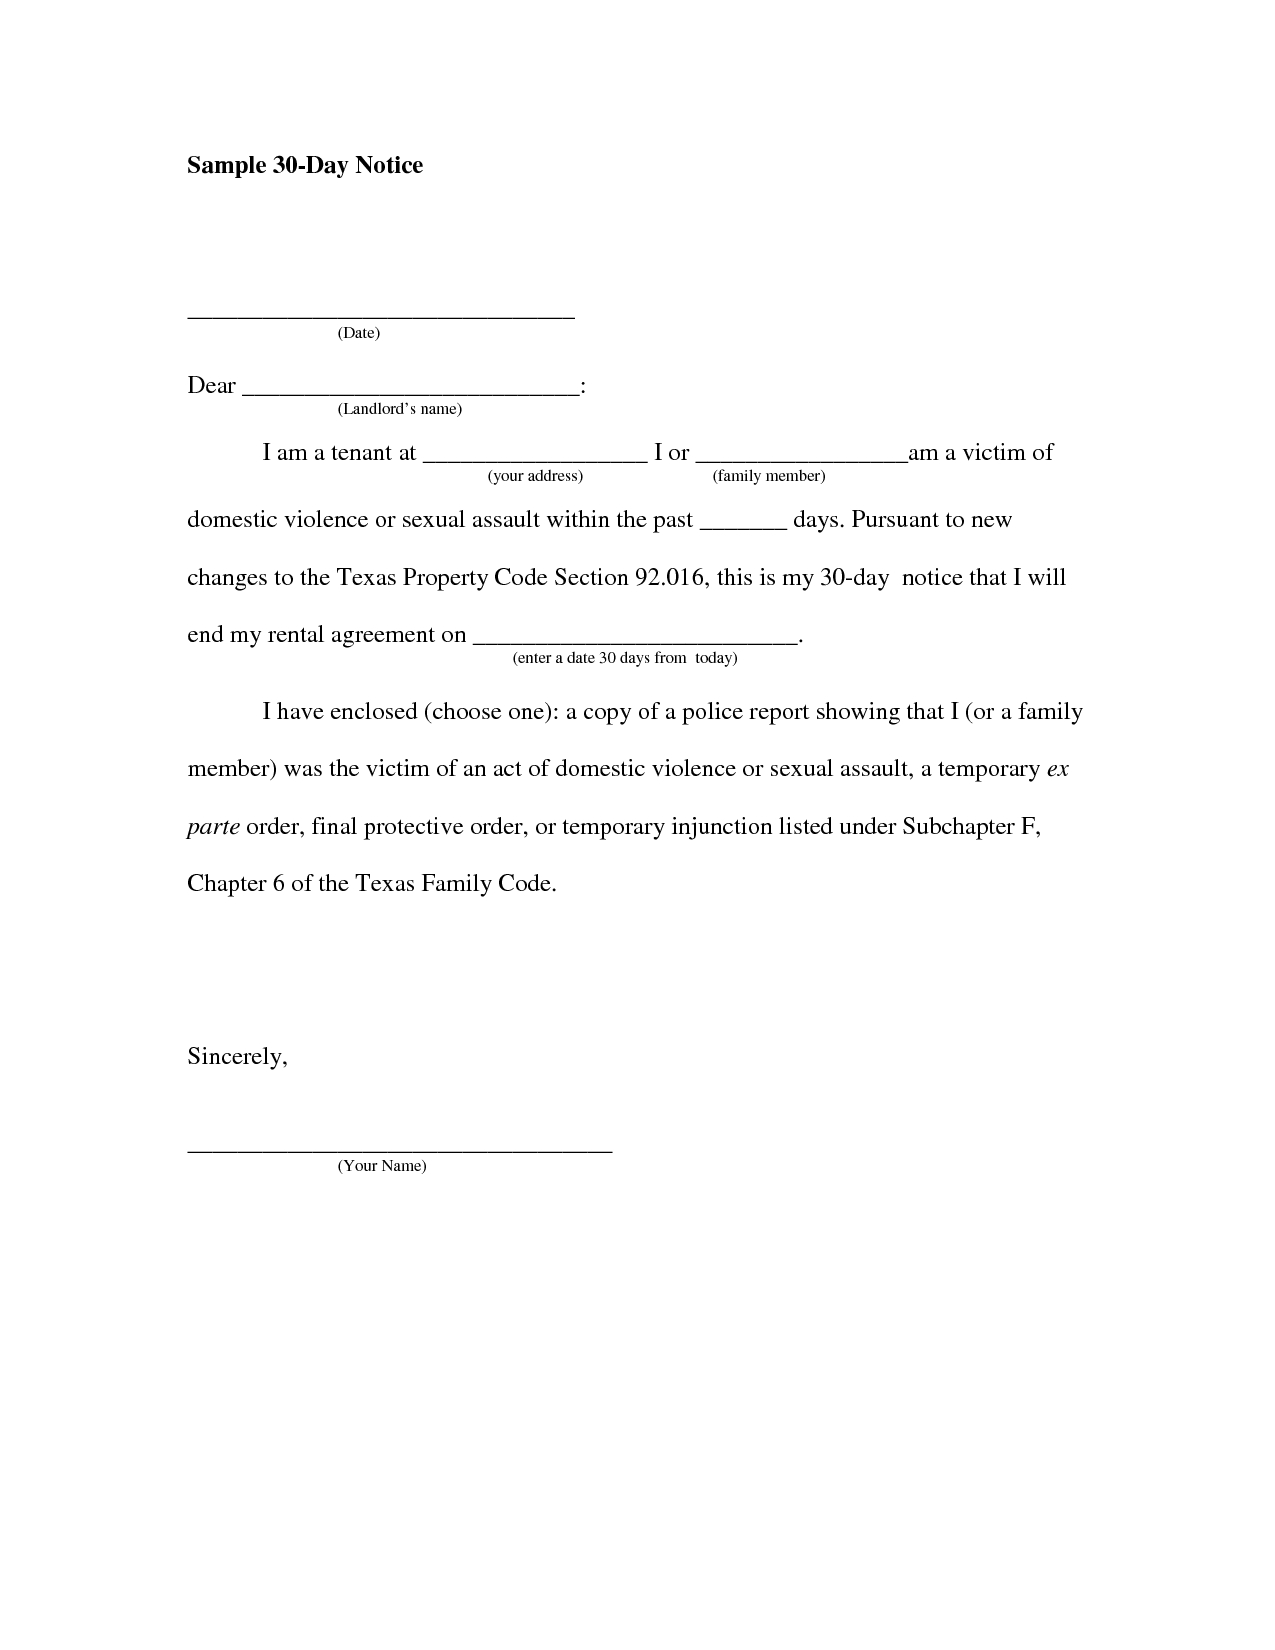 Assisted Living 30 Day Notice Letter Template - How to Write A Eviction Letter to A Family Member Letter